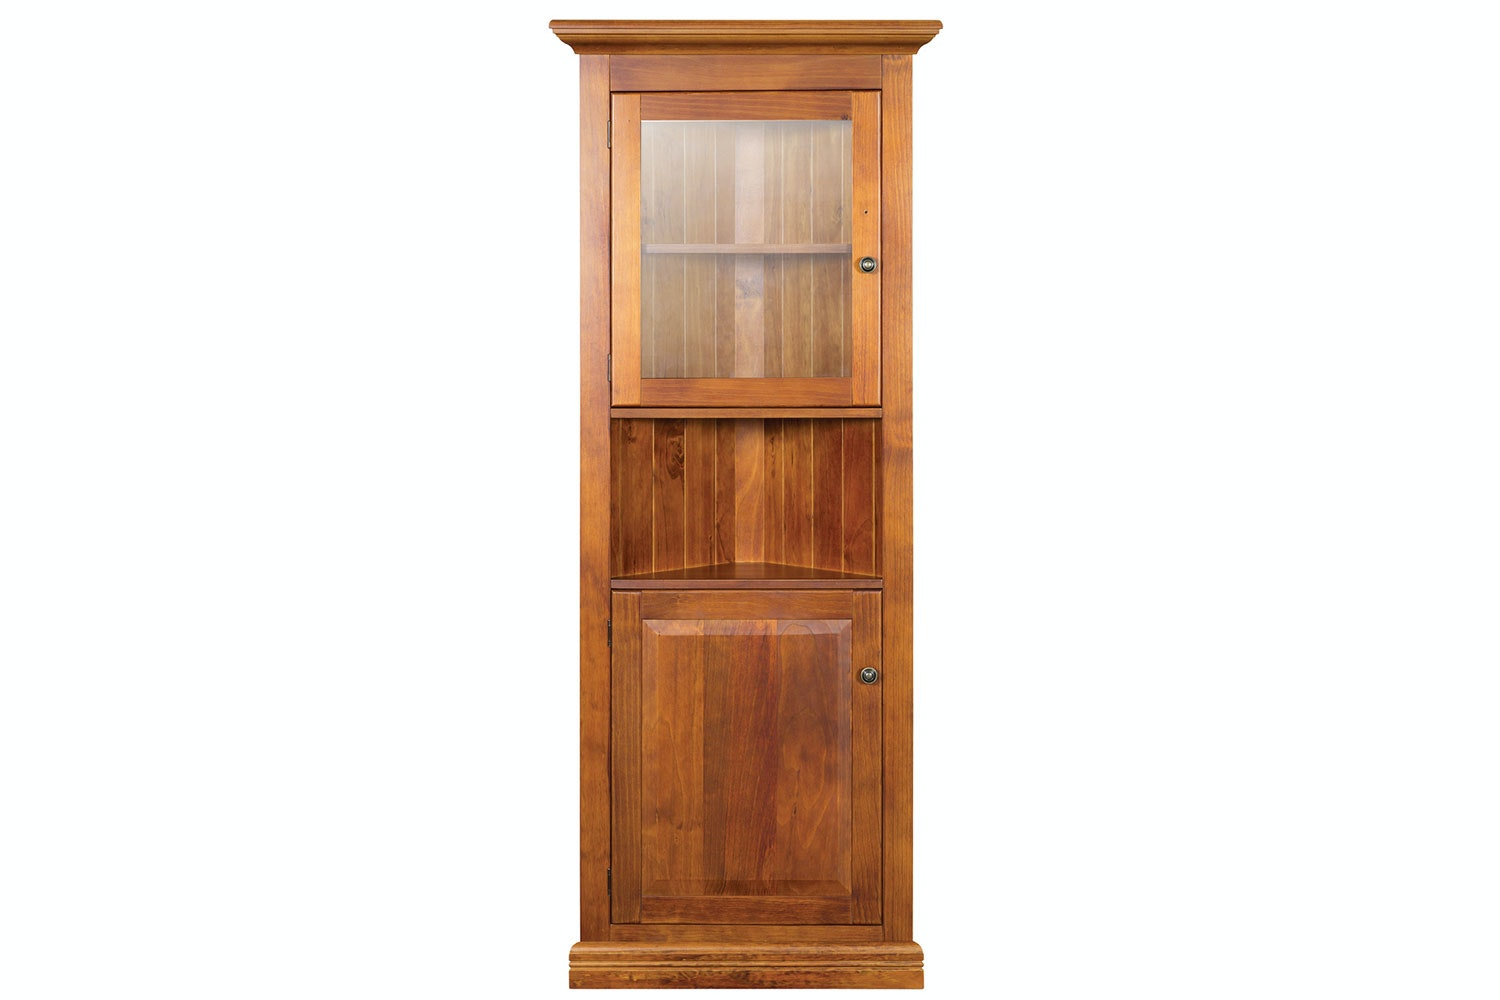 Waihi Corner Hutch by Coastwood Furniture